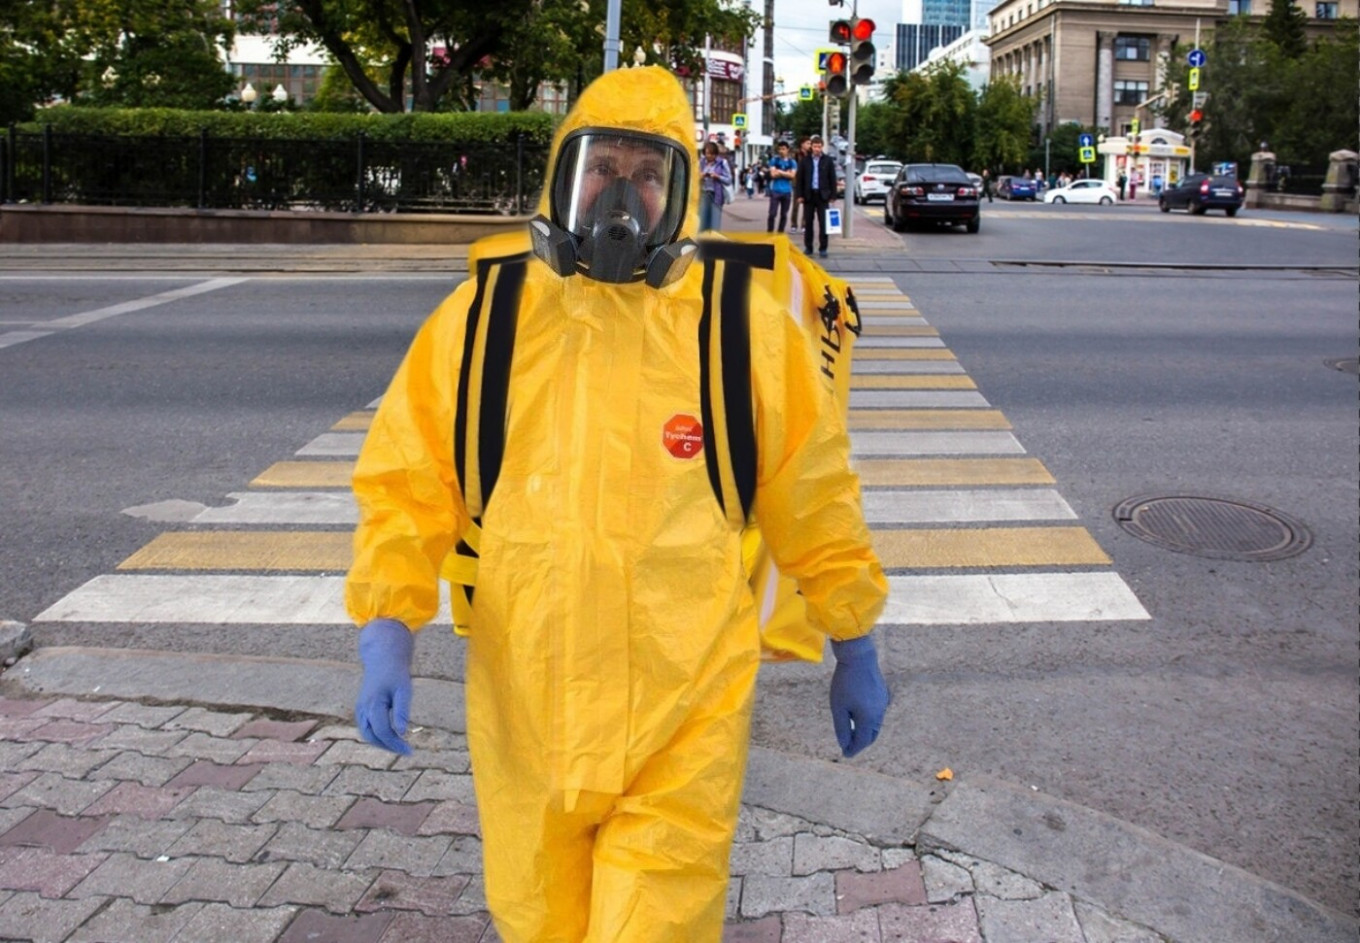 Putin S Yellow Coronavirus Suit The Suit That Launched 1 000 Memes The Moscow Times